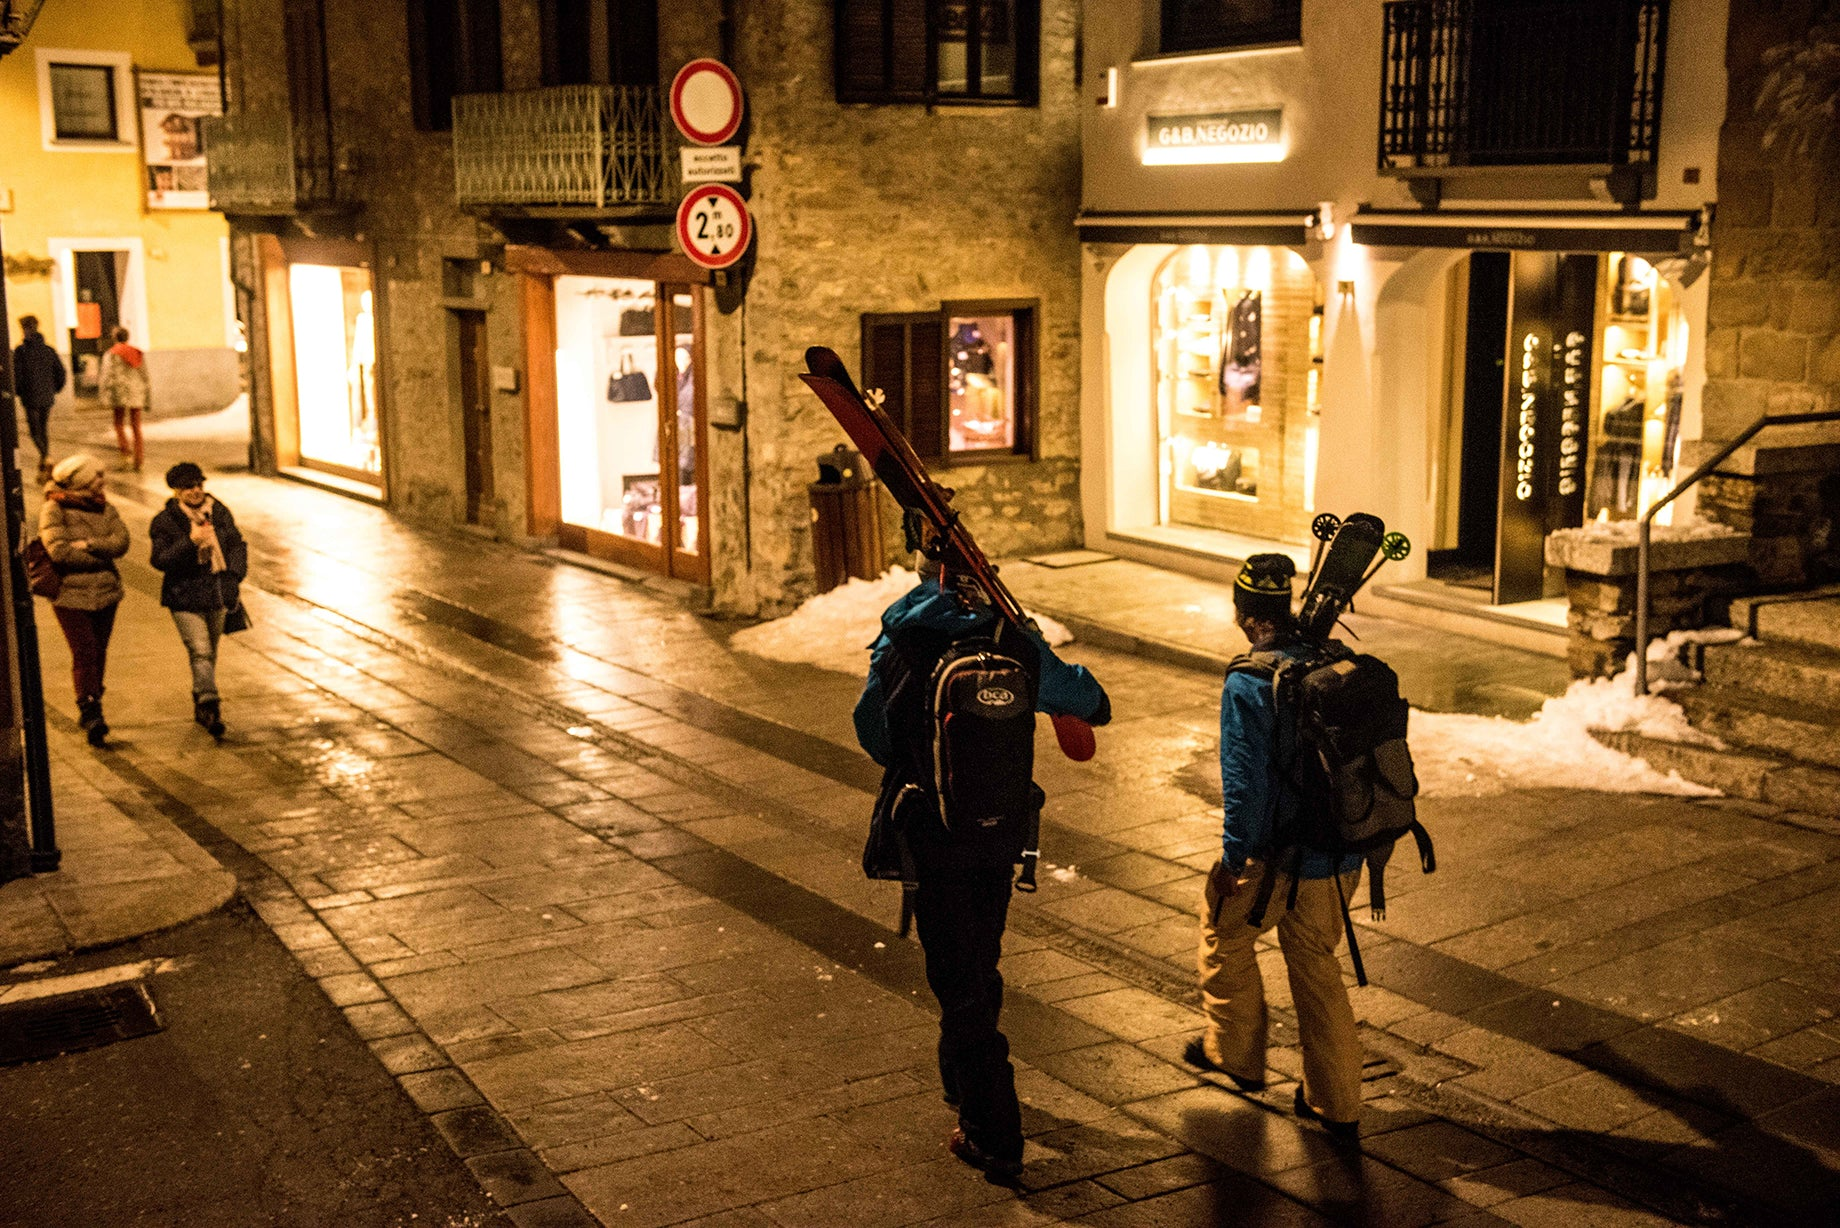 Skiers walking through town at night